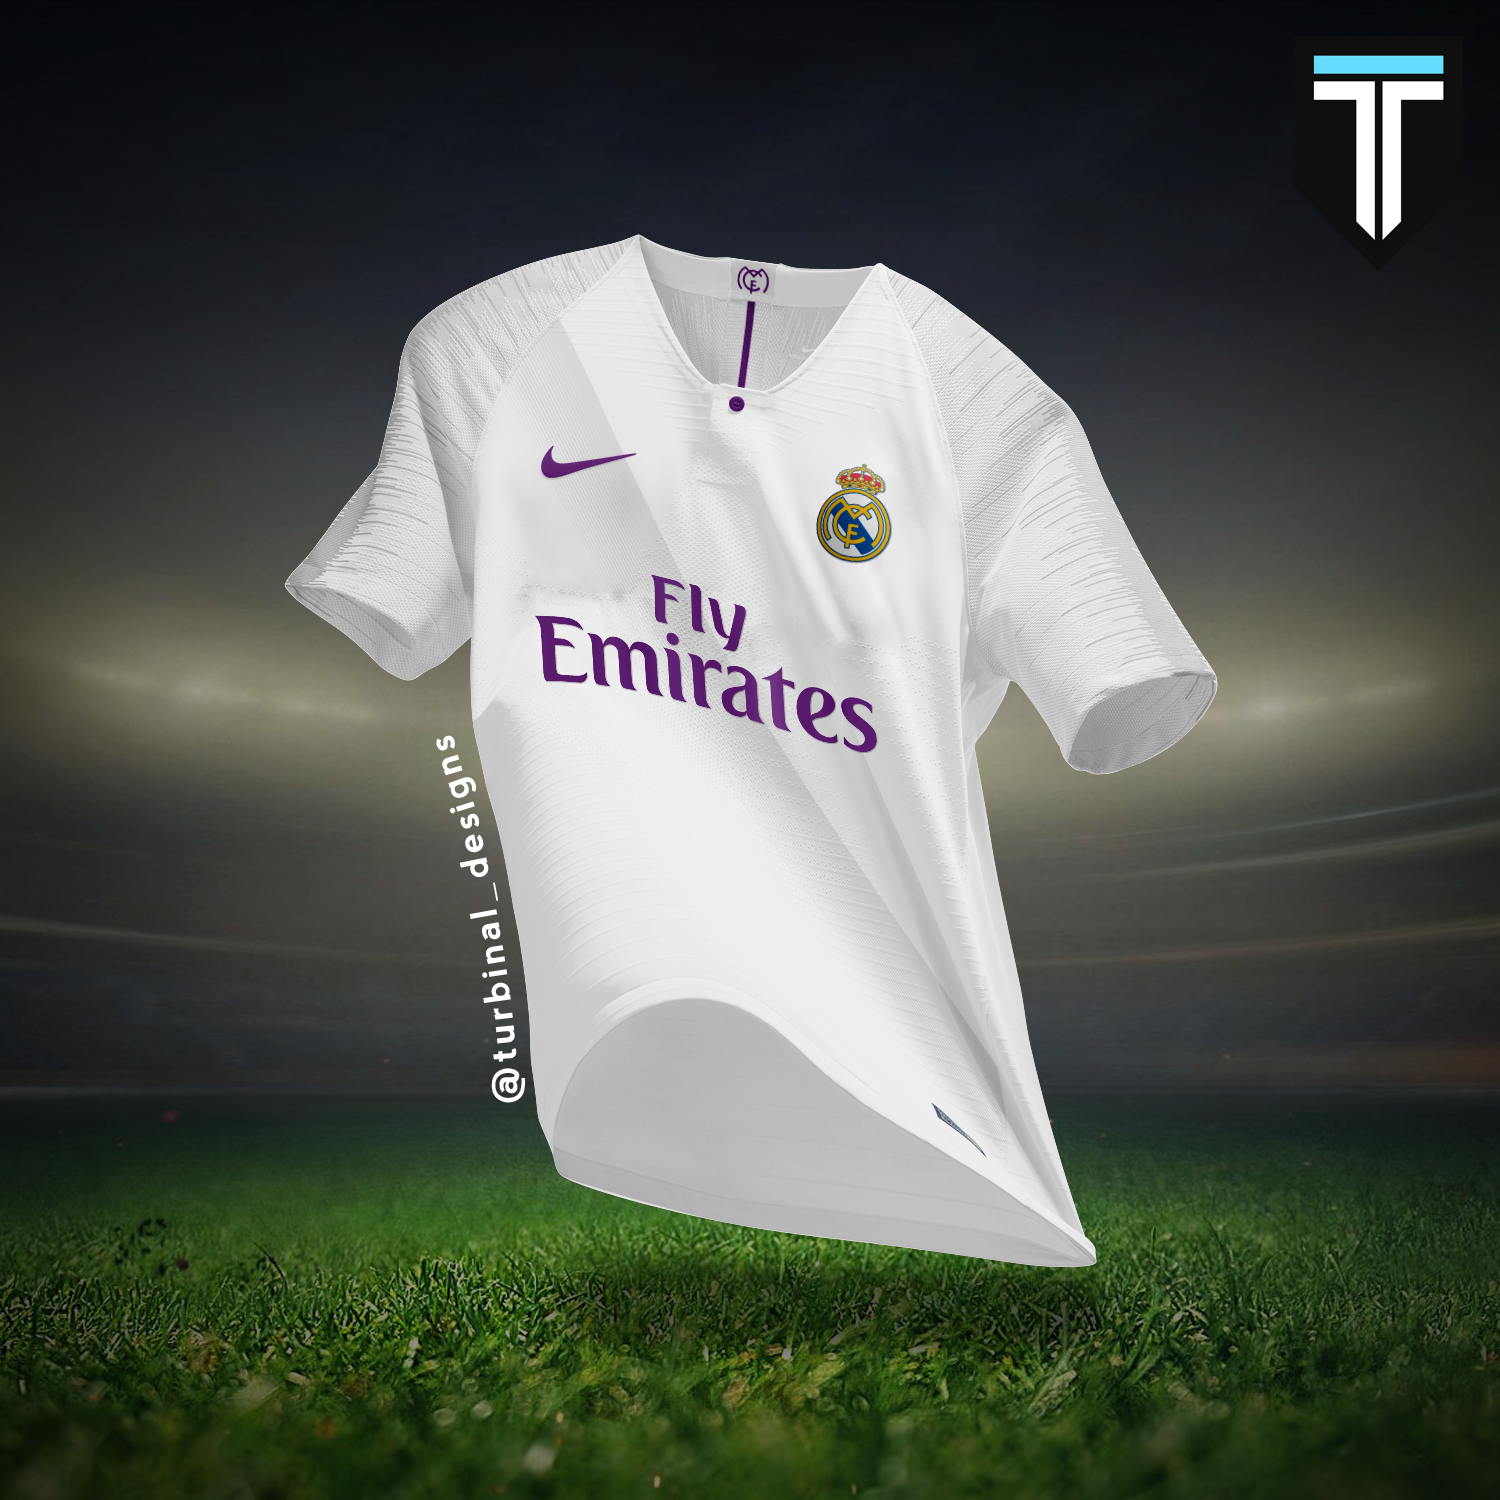 b49da48e706 Real Madrid Nike Home Kit Concept